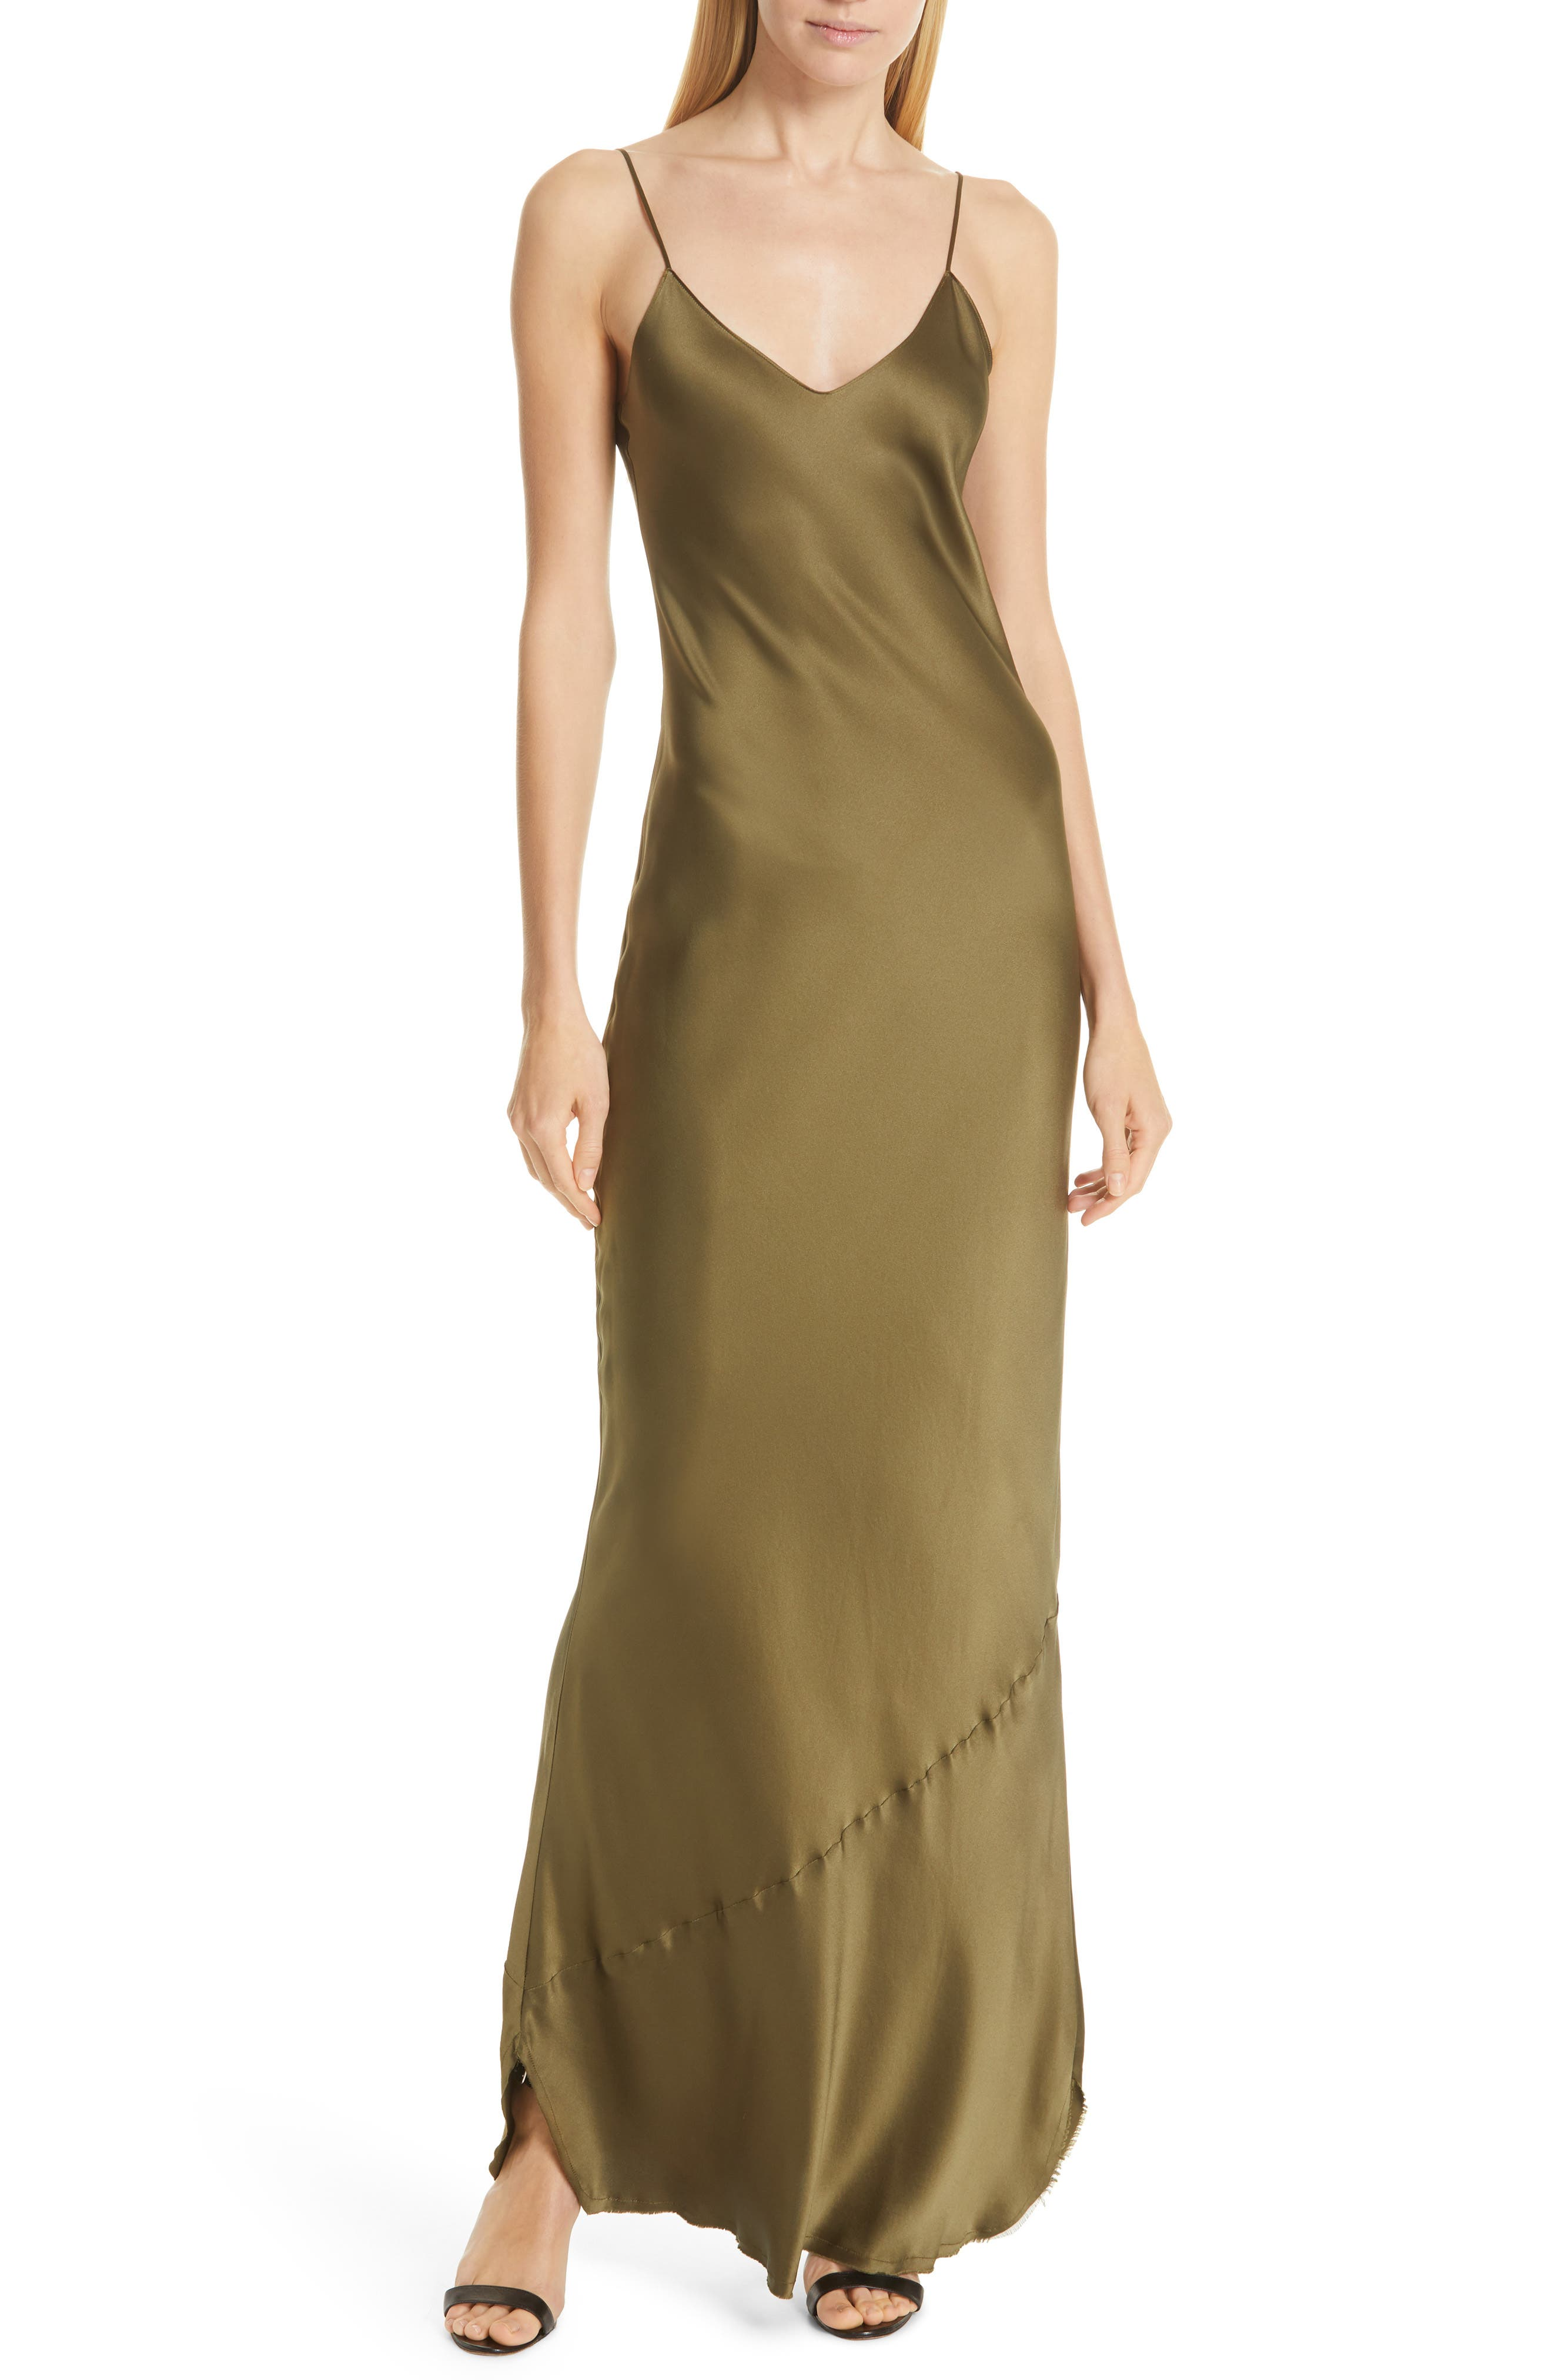 NILI LOTAN, Silk Camisole Gown, Main thumbnail 1, color, OLIVE